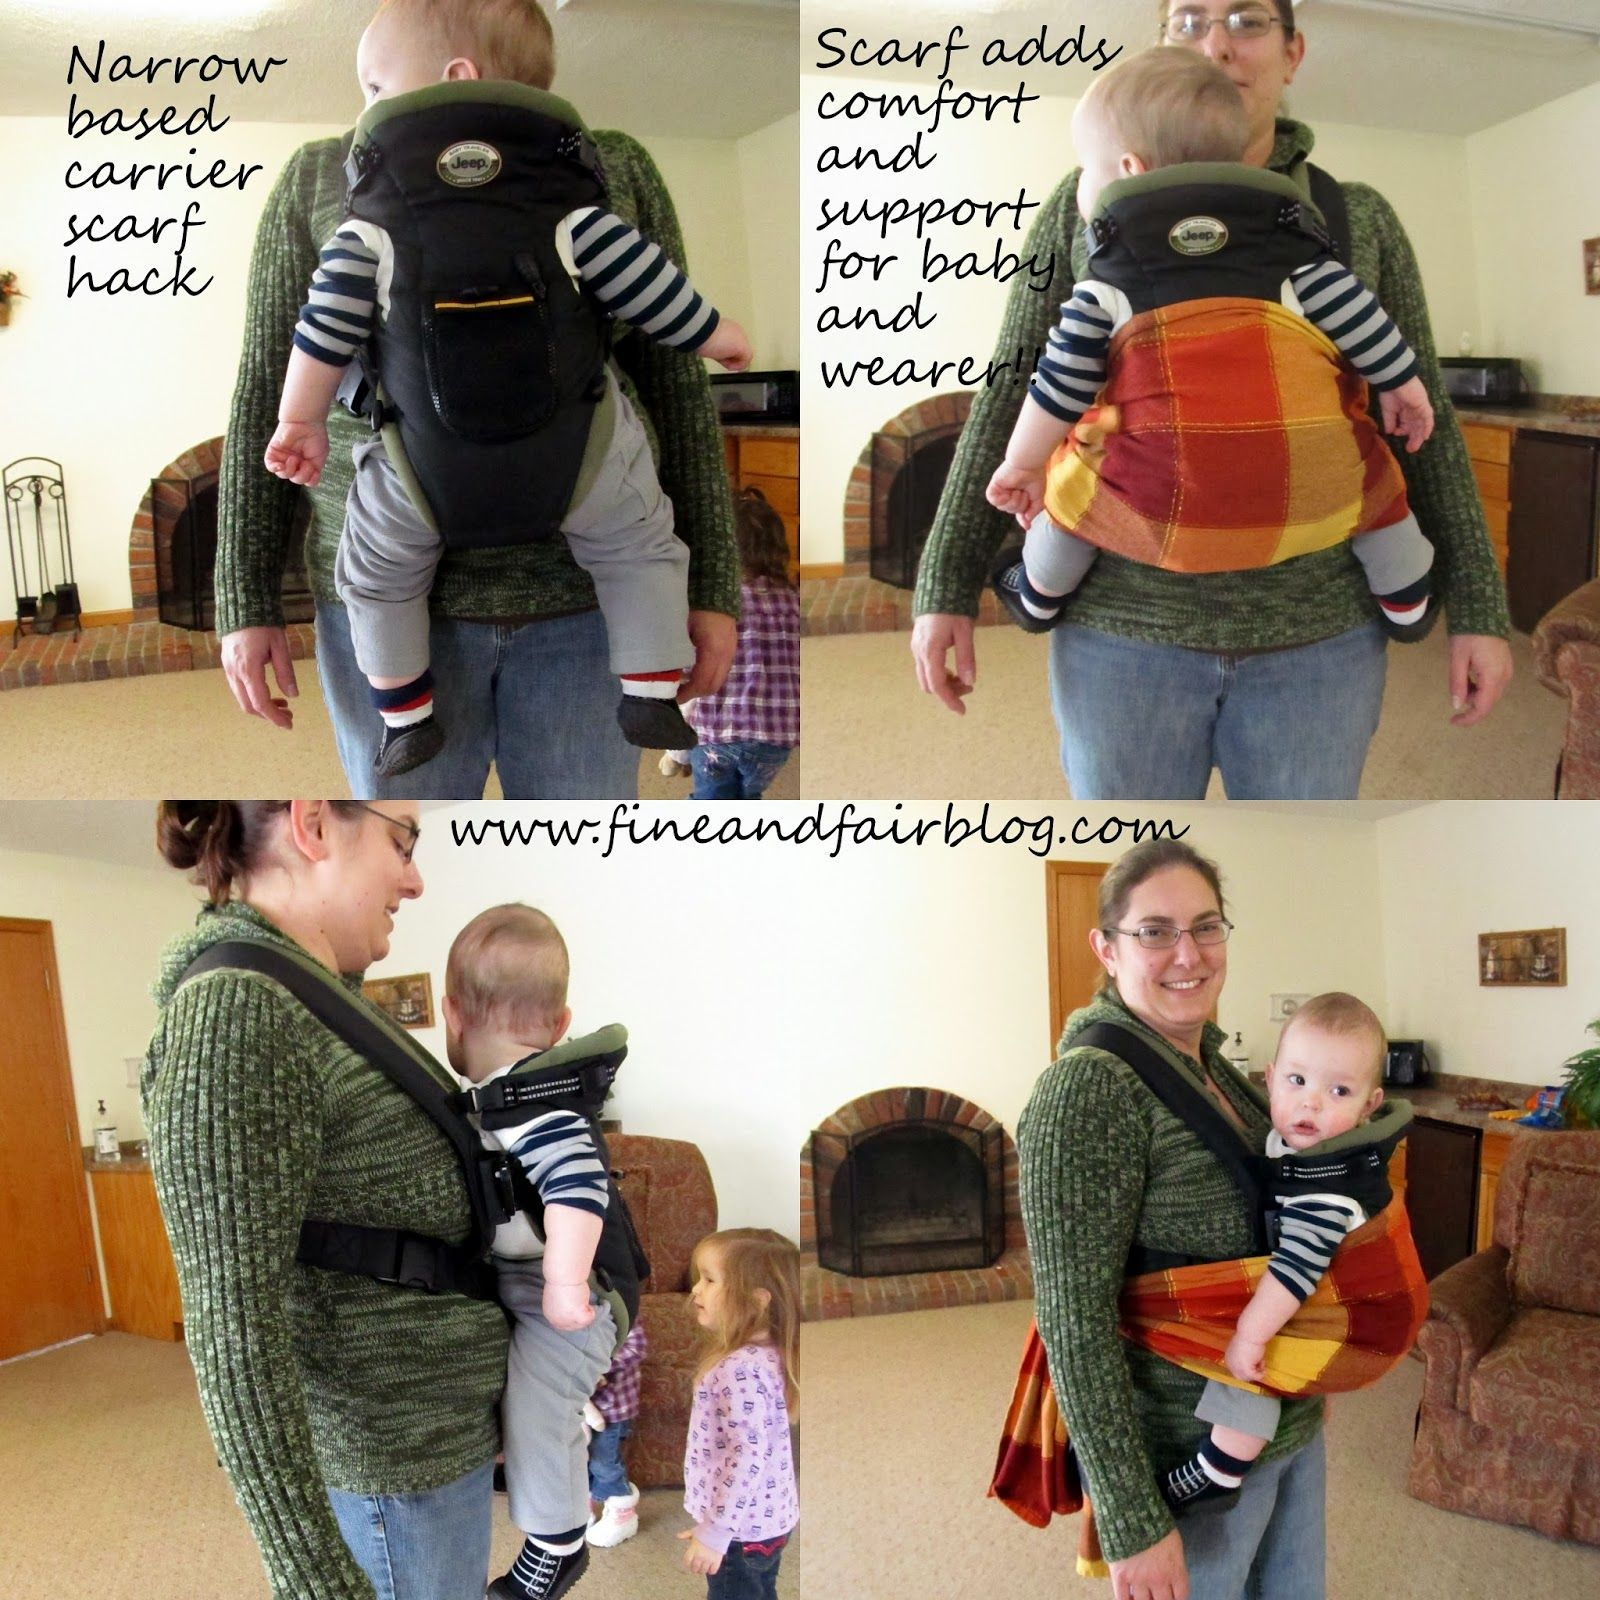 Budget Friendly Babywearing Trick On How To Turn A Narrow Based